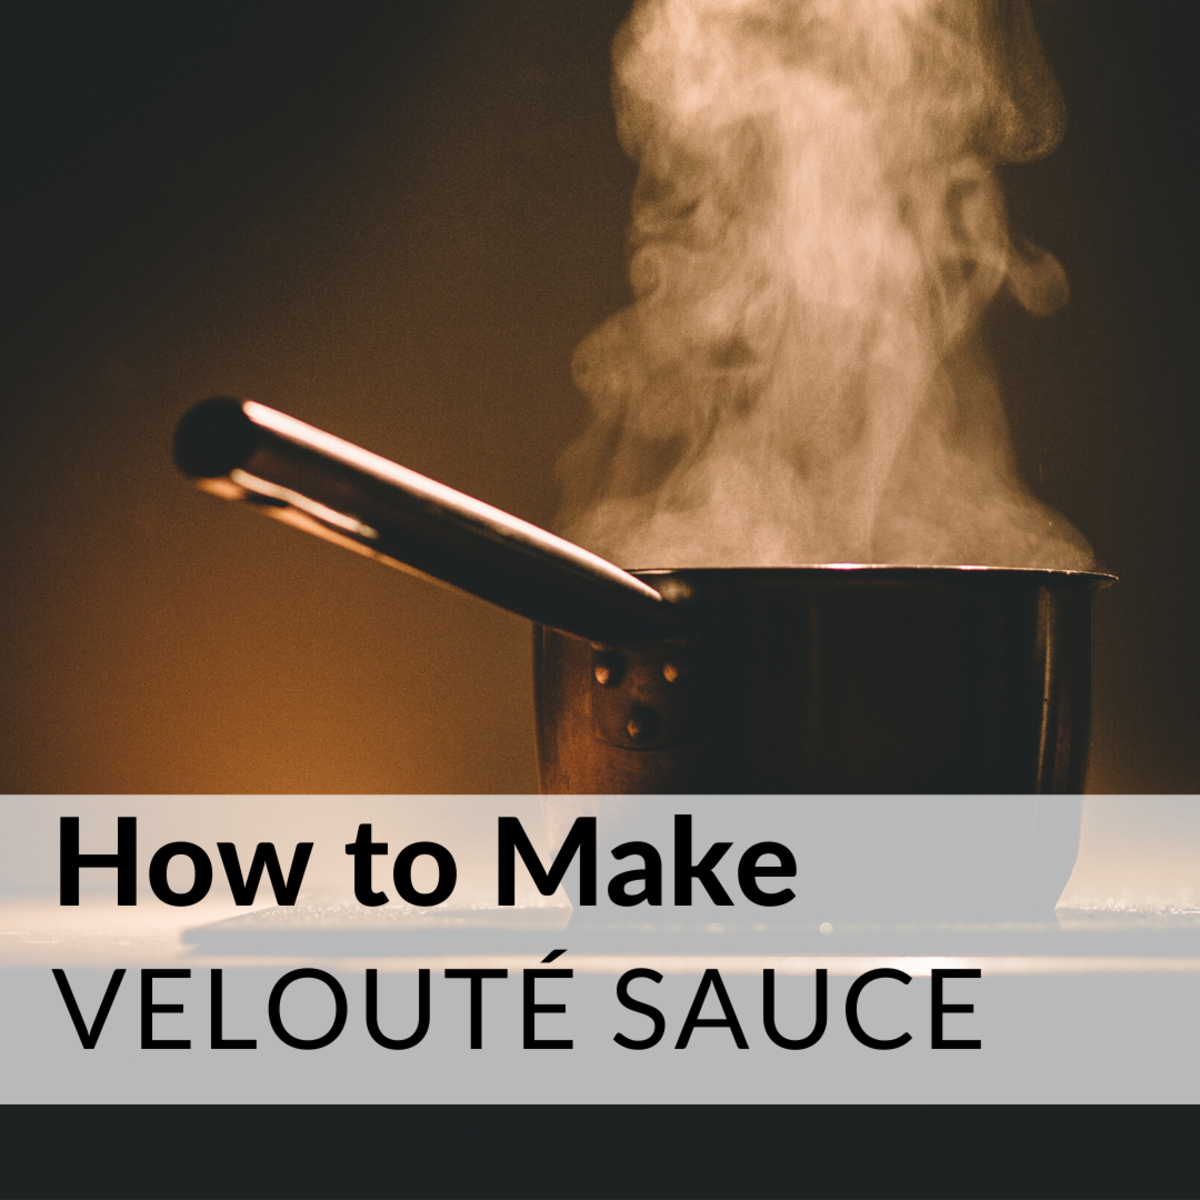 How to Make Velouté Sauce